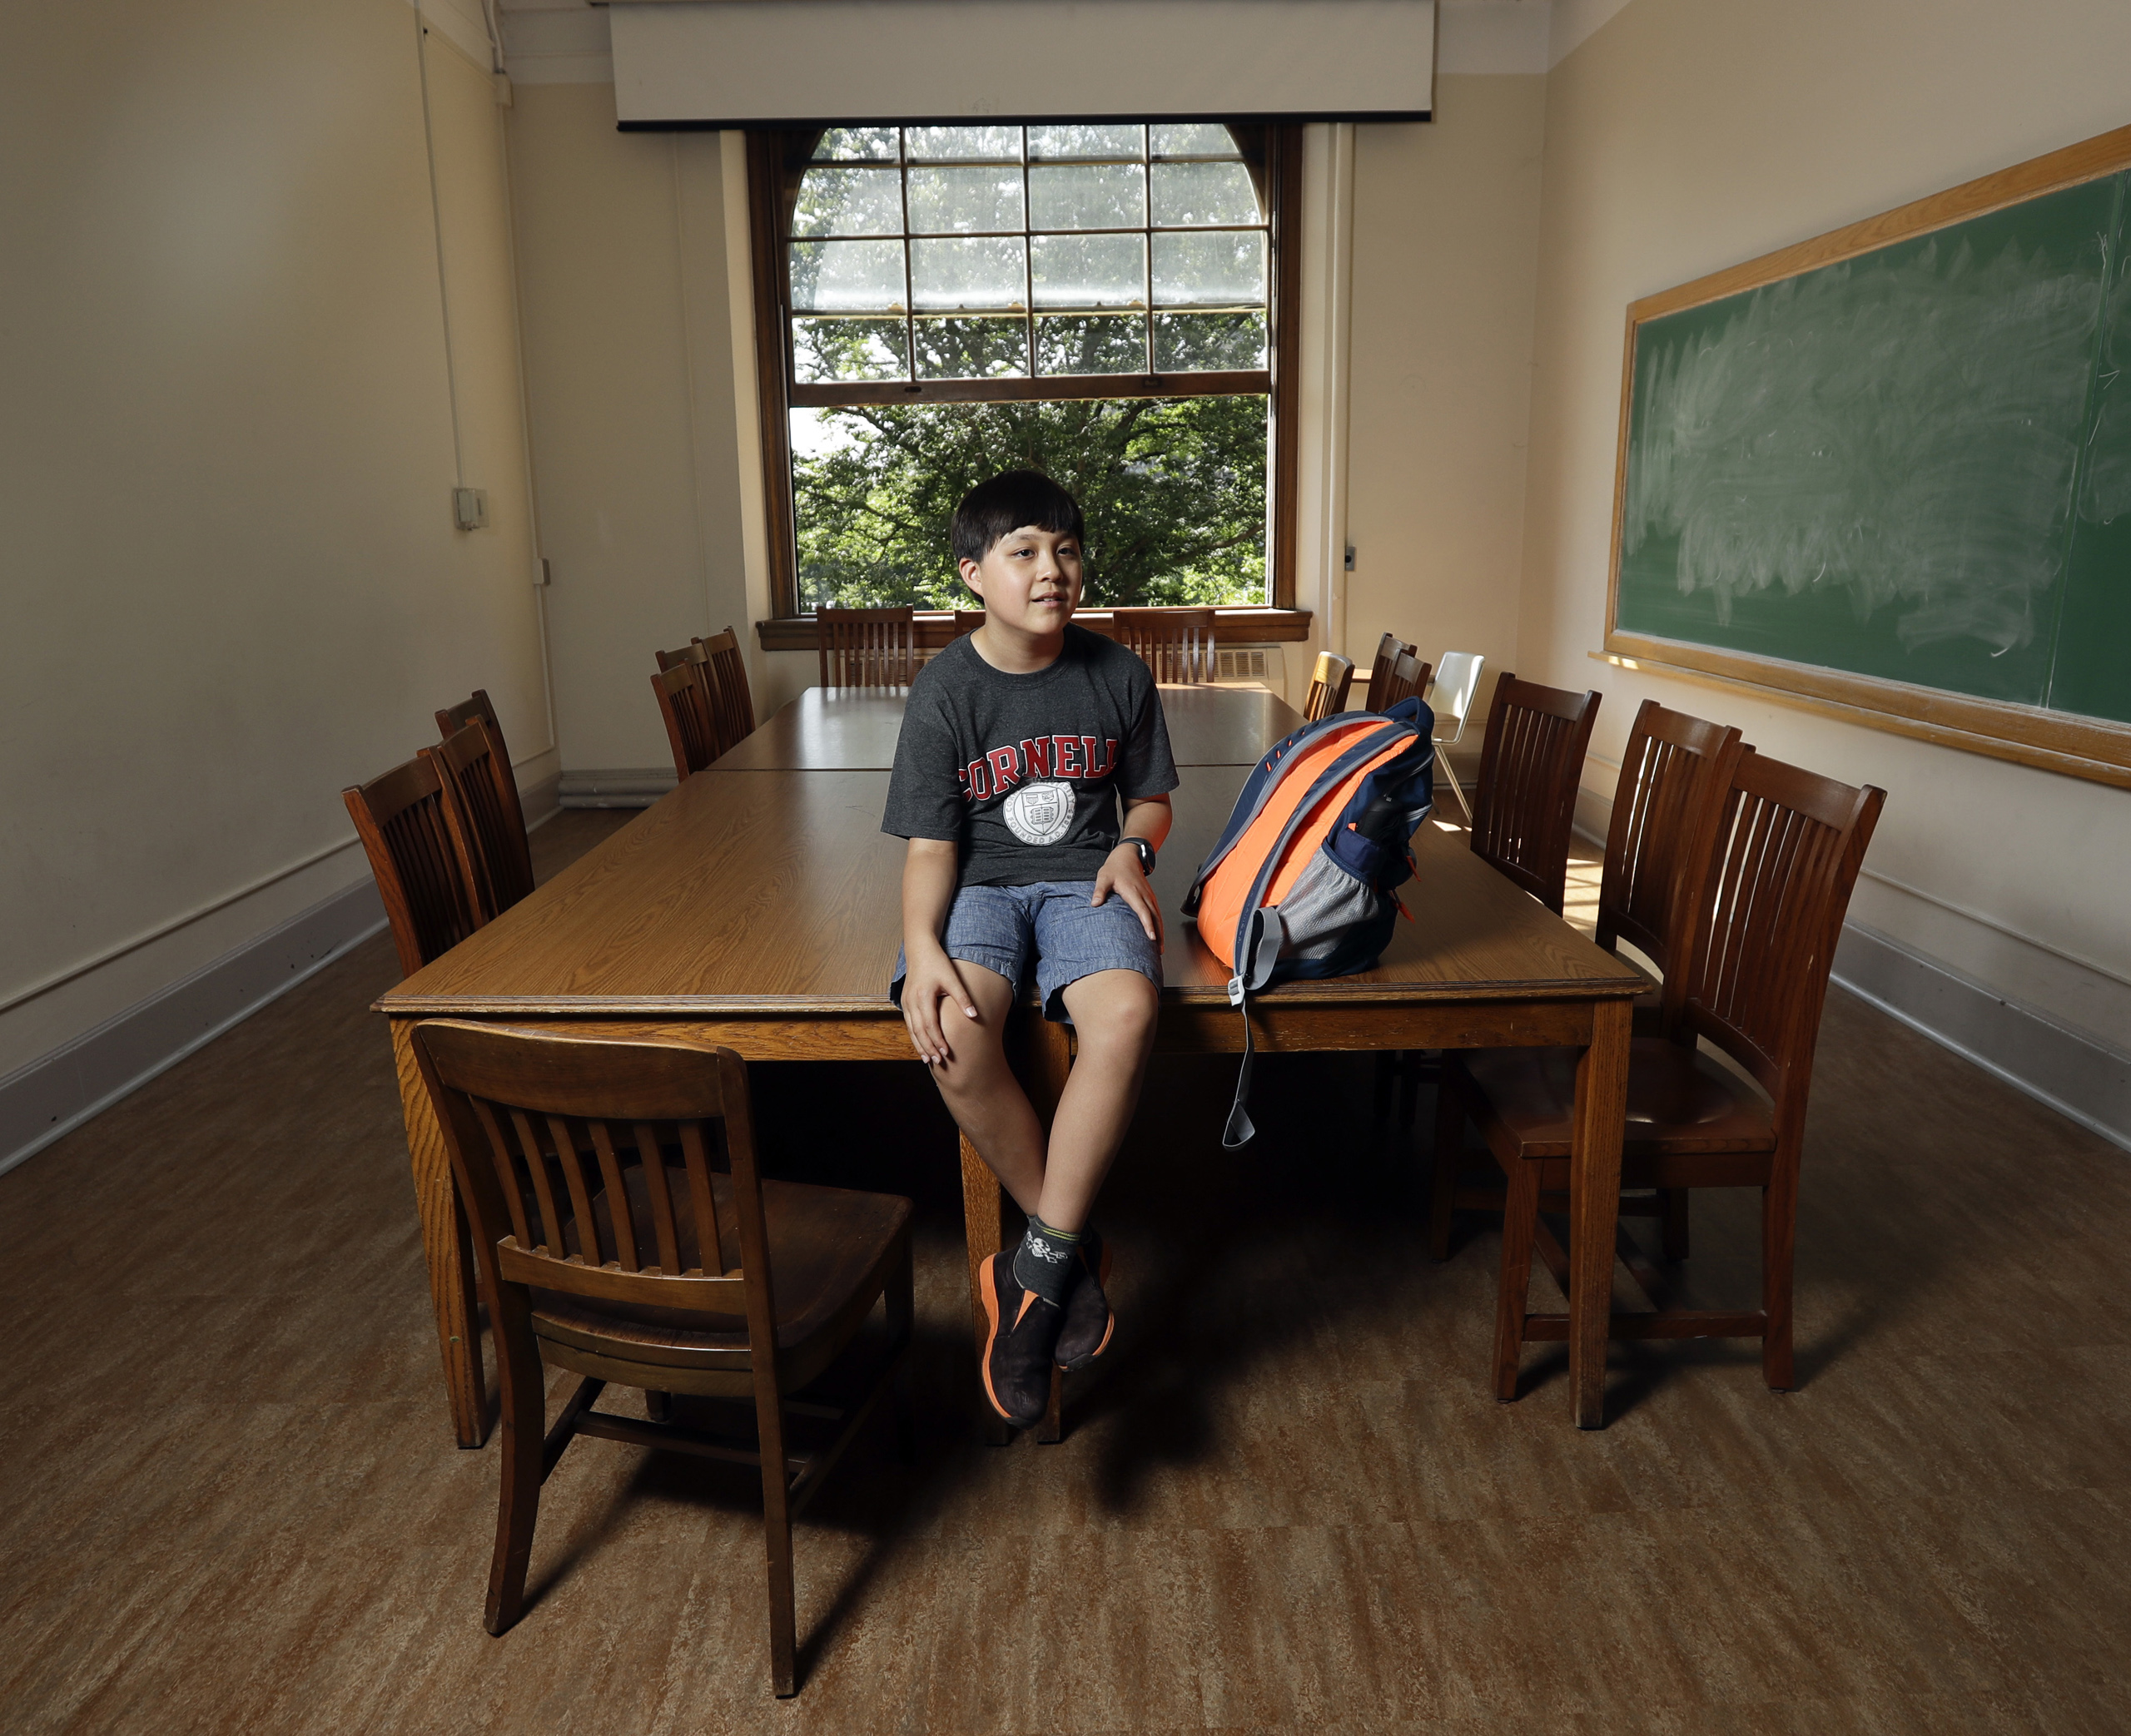 Jeremy Shuler, 12, a freshman at Cornell University, poses on campus in Ithaca, N.Y. He's the youngest student on record to attend the Ivy League school on Aug. 26, 2016.